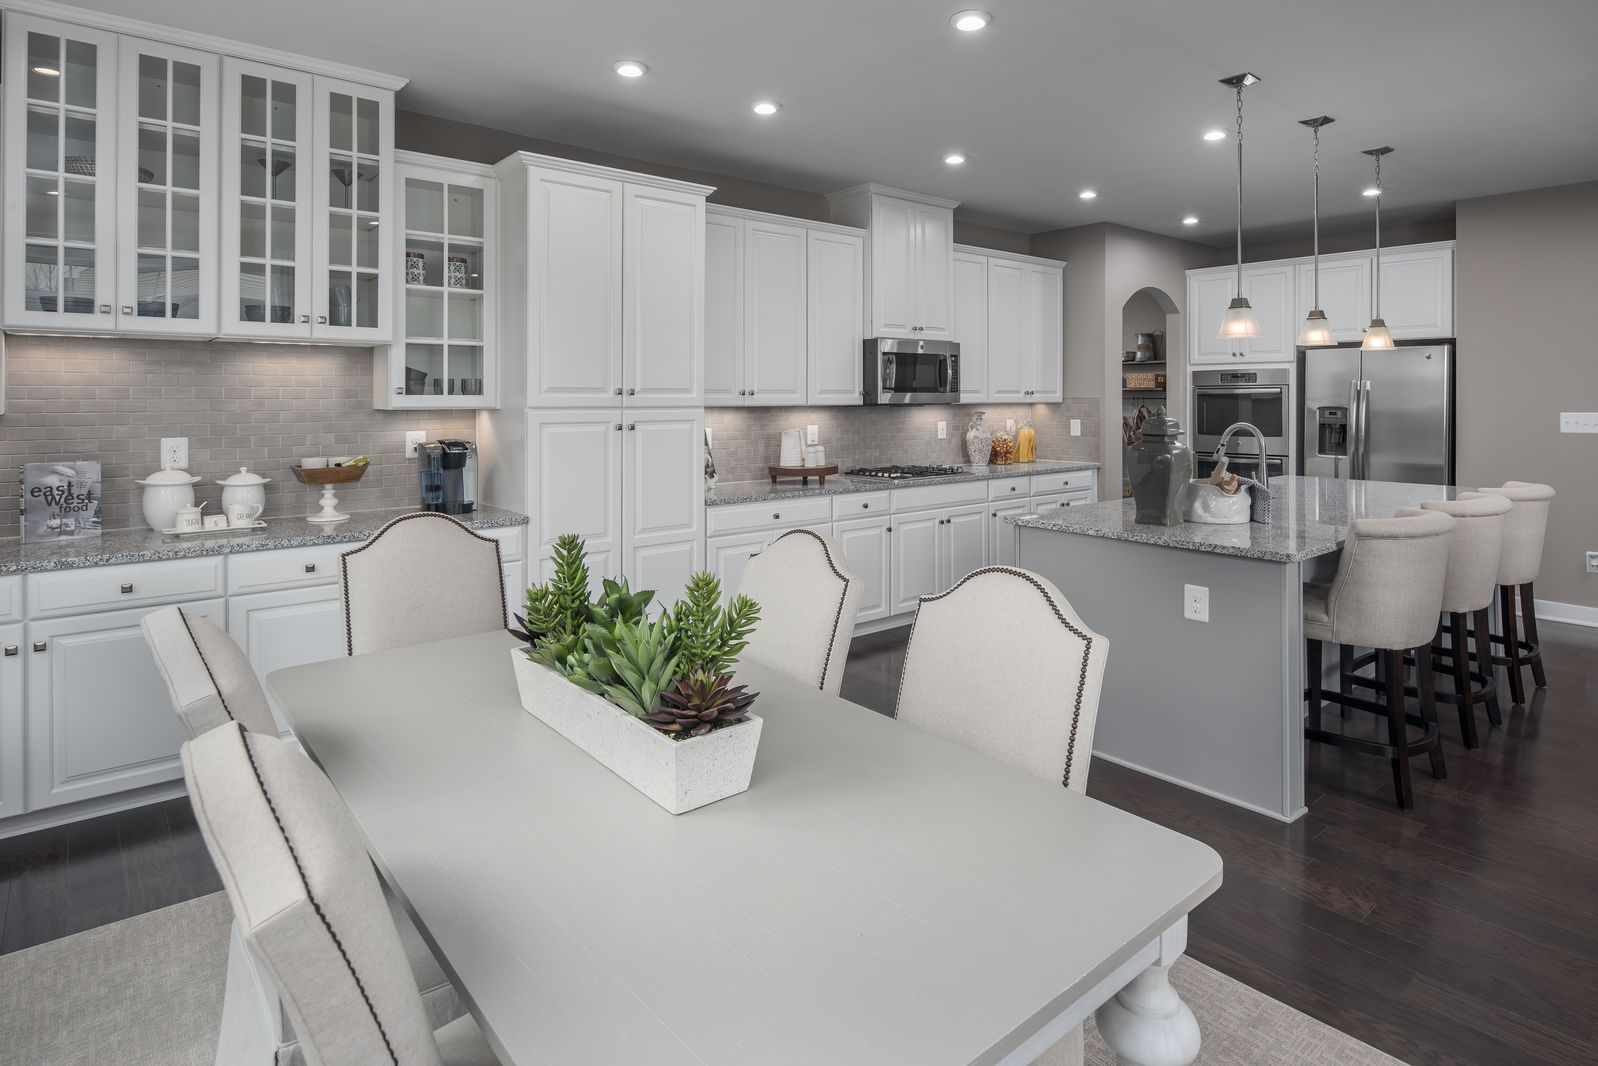 Kitchen featured in the Landon By Ryan Homes in Washington, MD